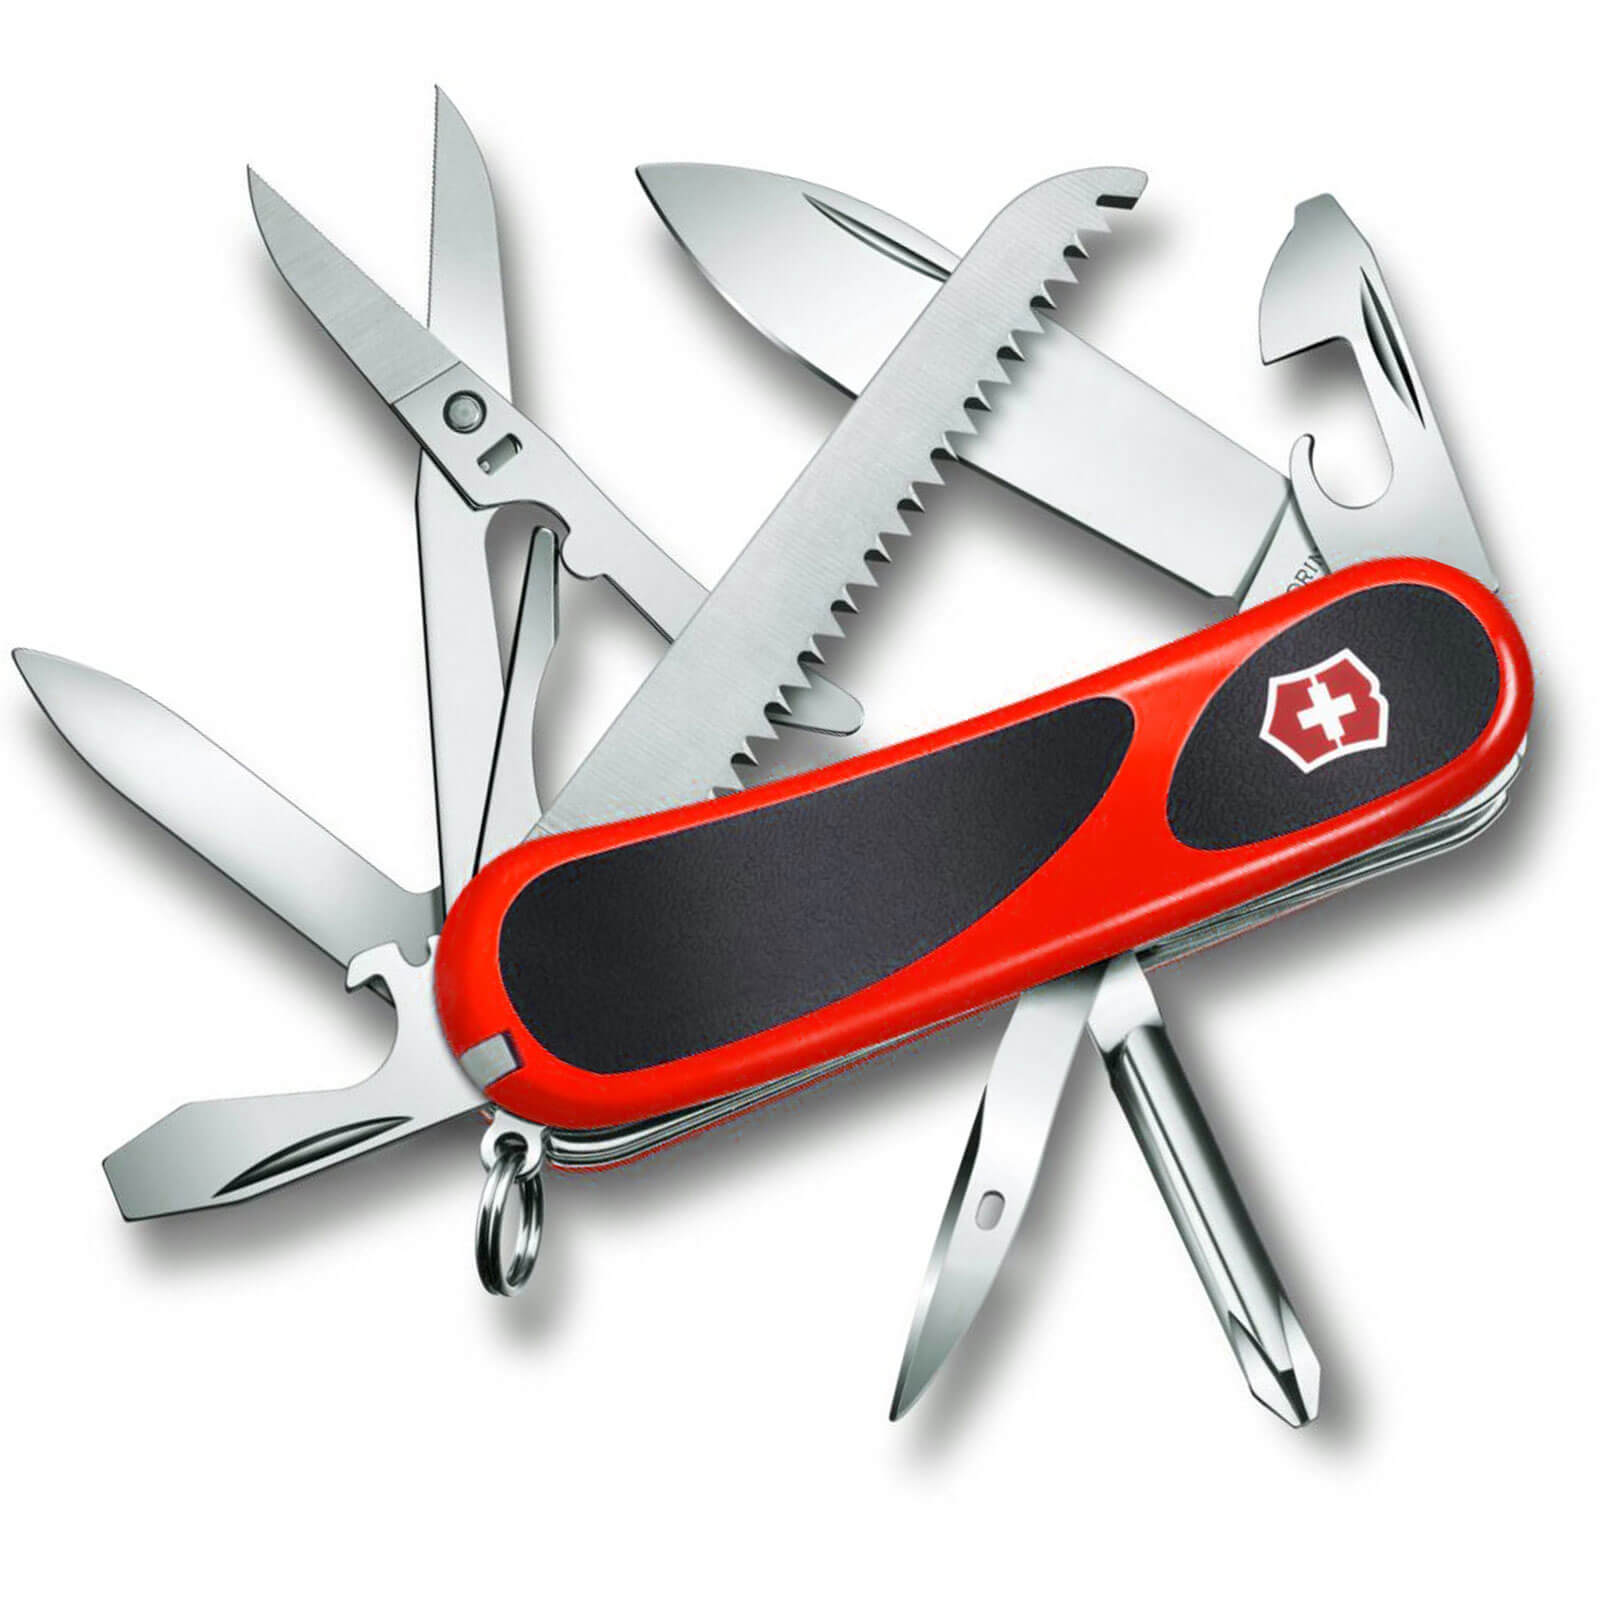 Image of Victorinox Evolution 18 Swiss Army Knife Red / Black